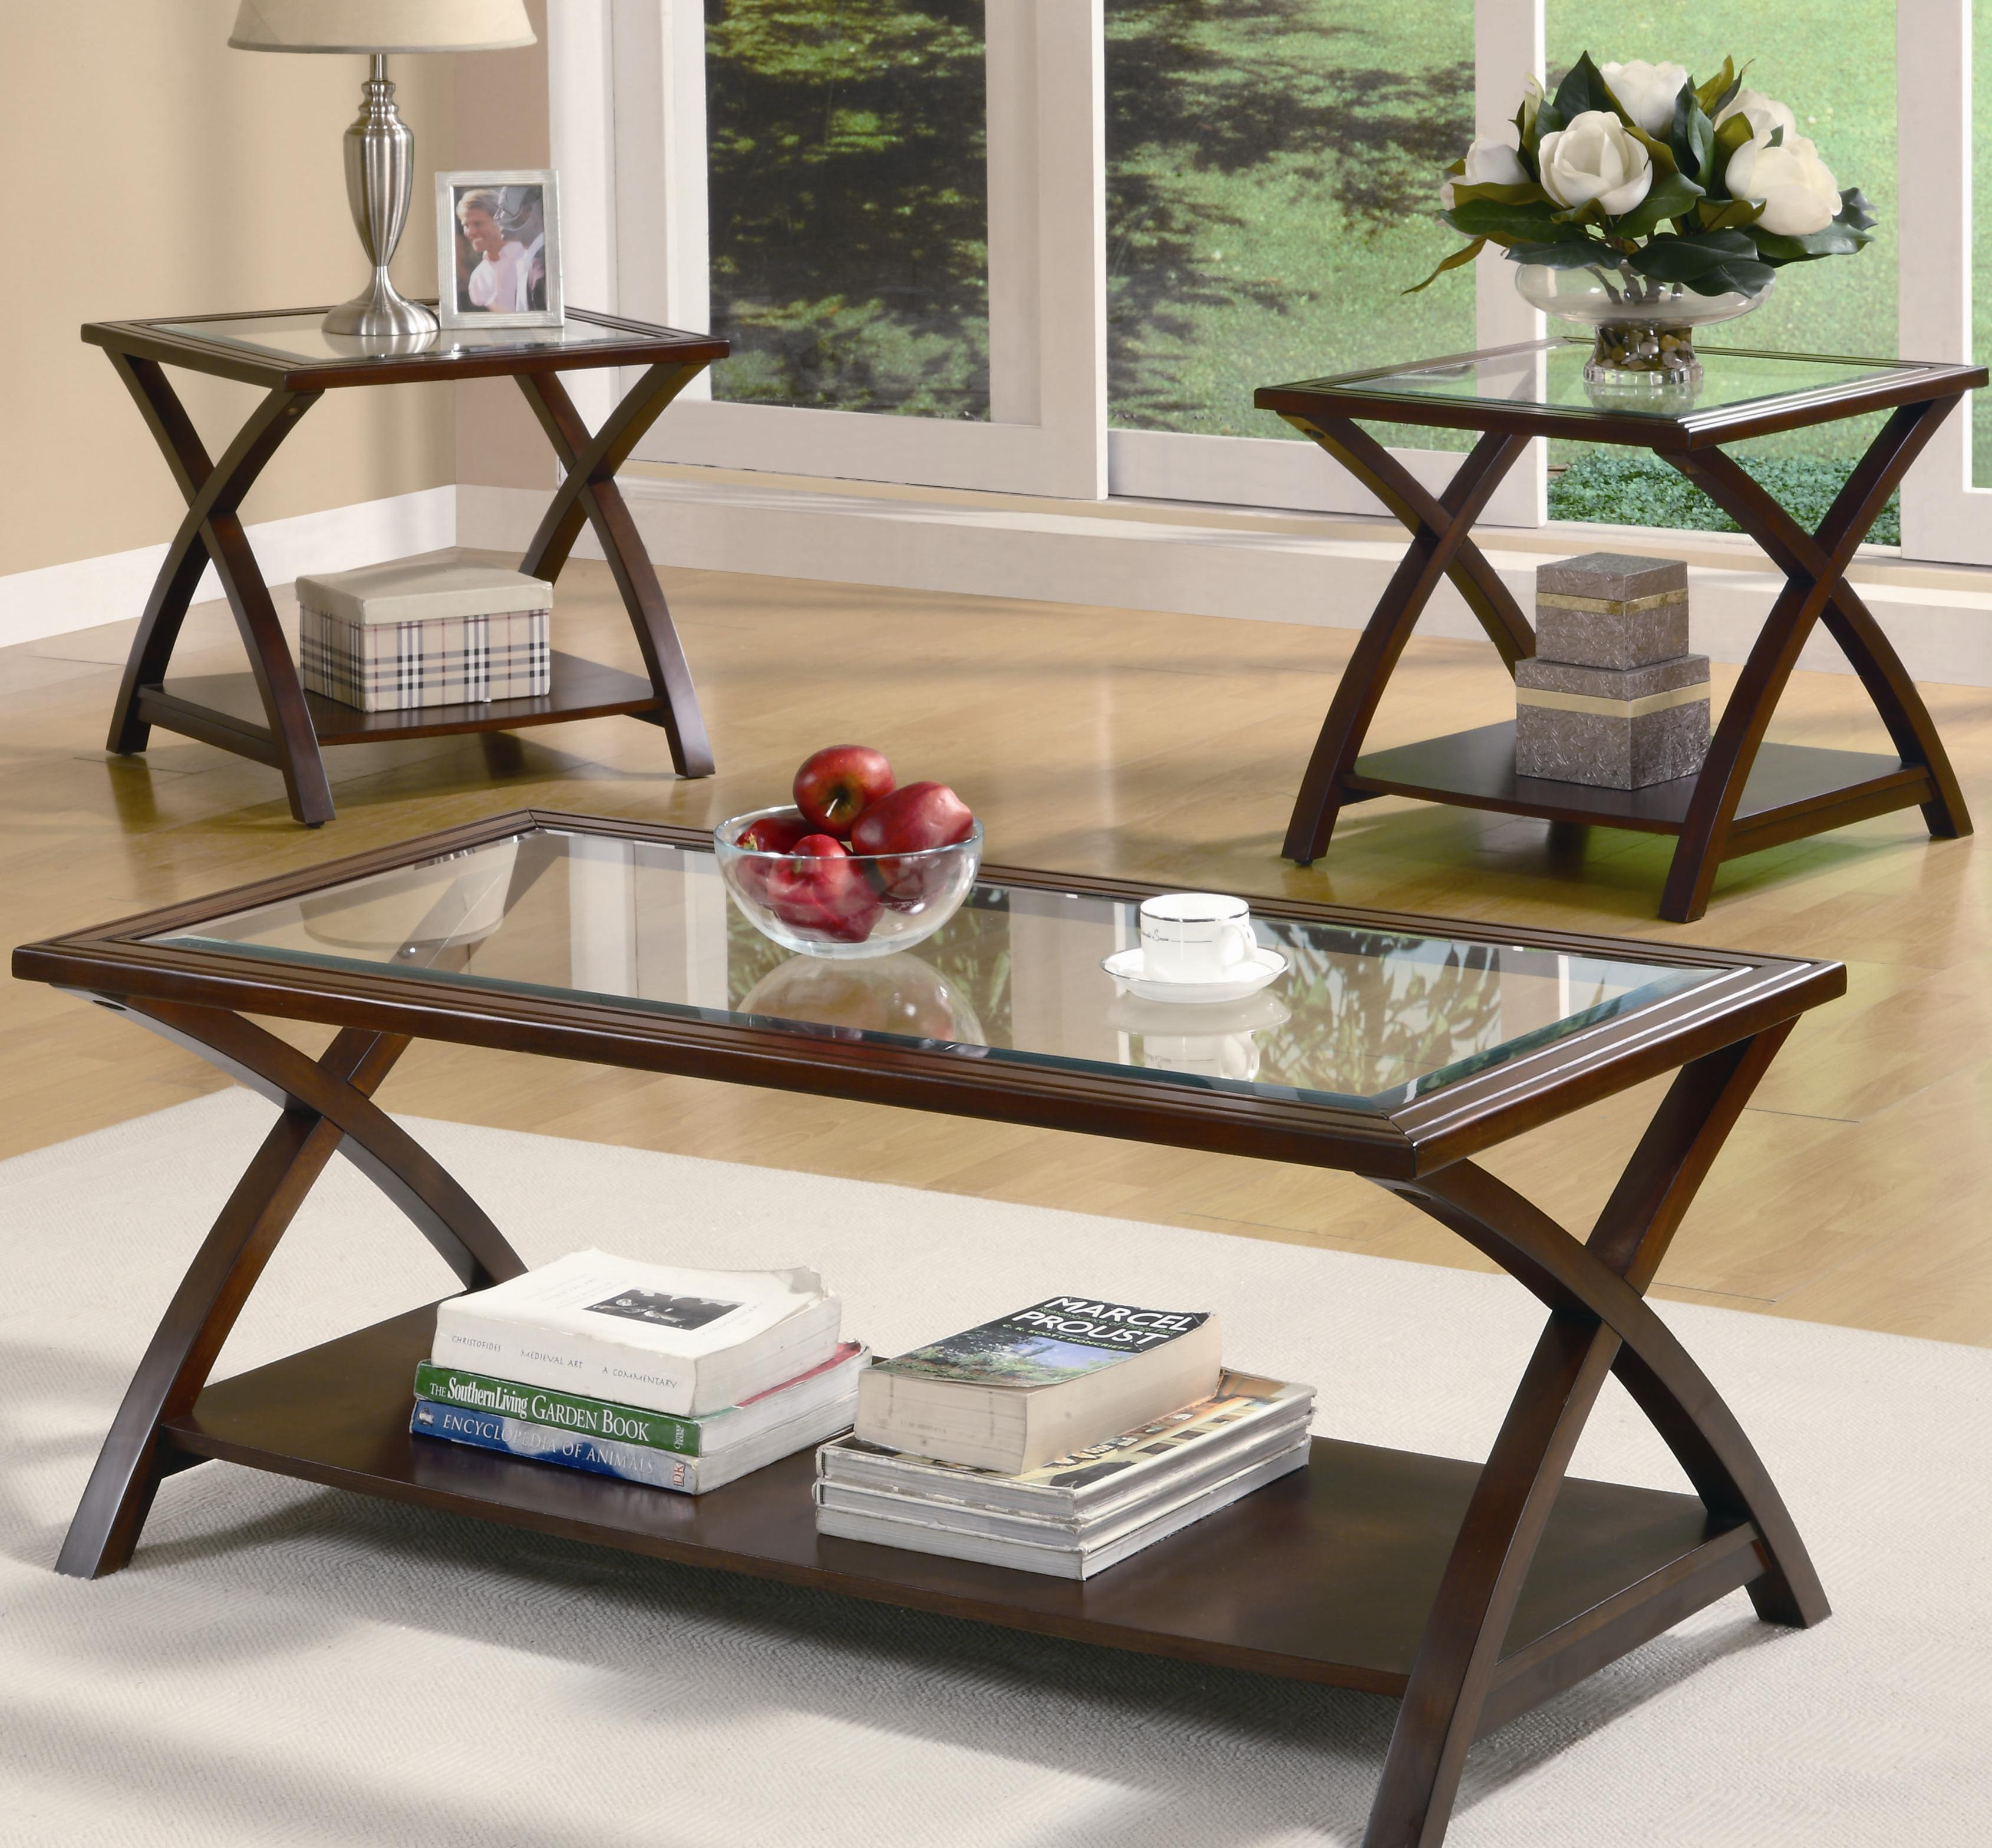 Coaster Occasional Table Sets 701527 Coffee Table And End Table Set throughout size 3380 X 3136